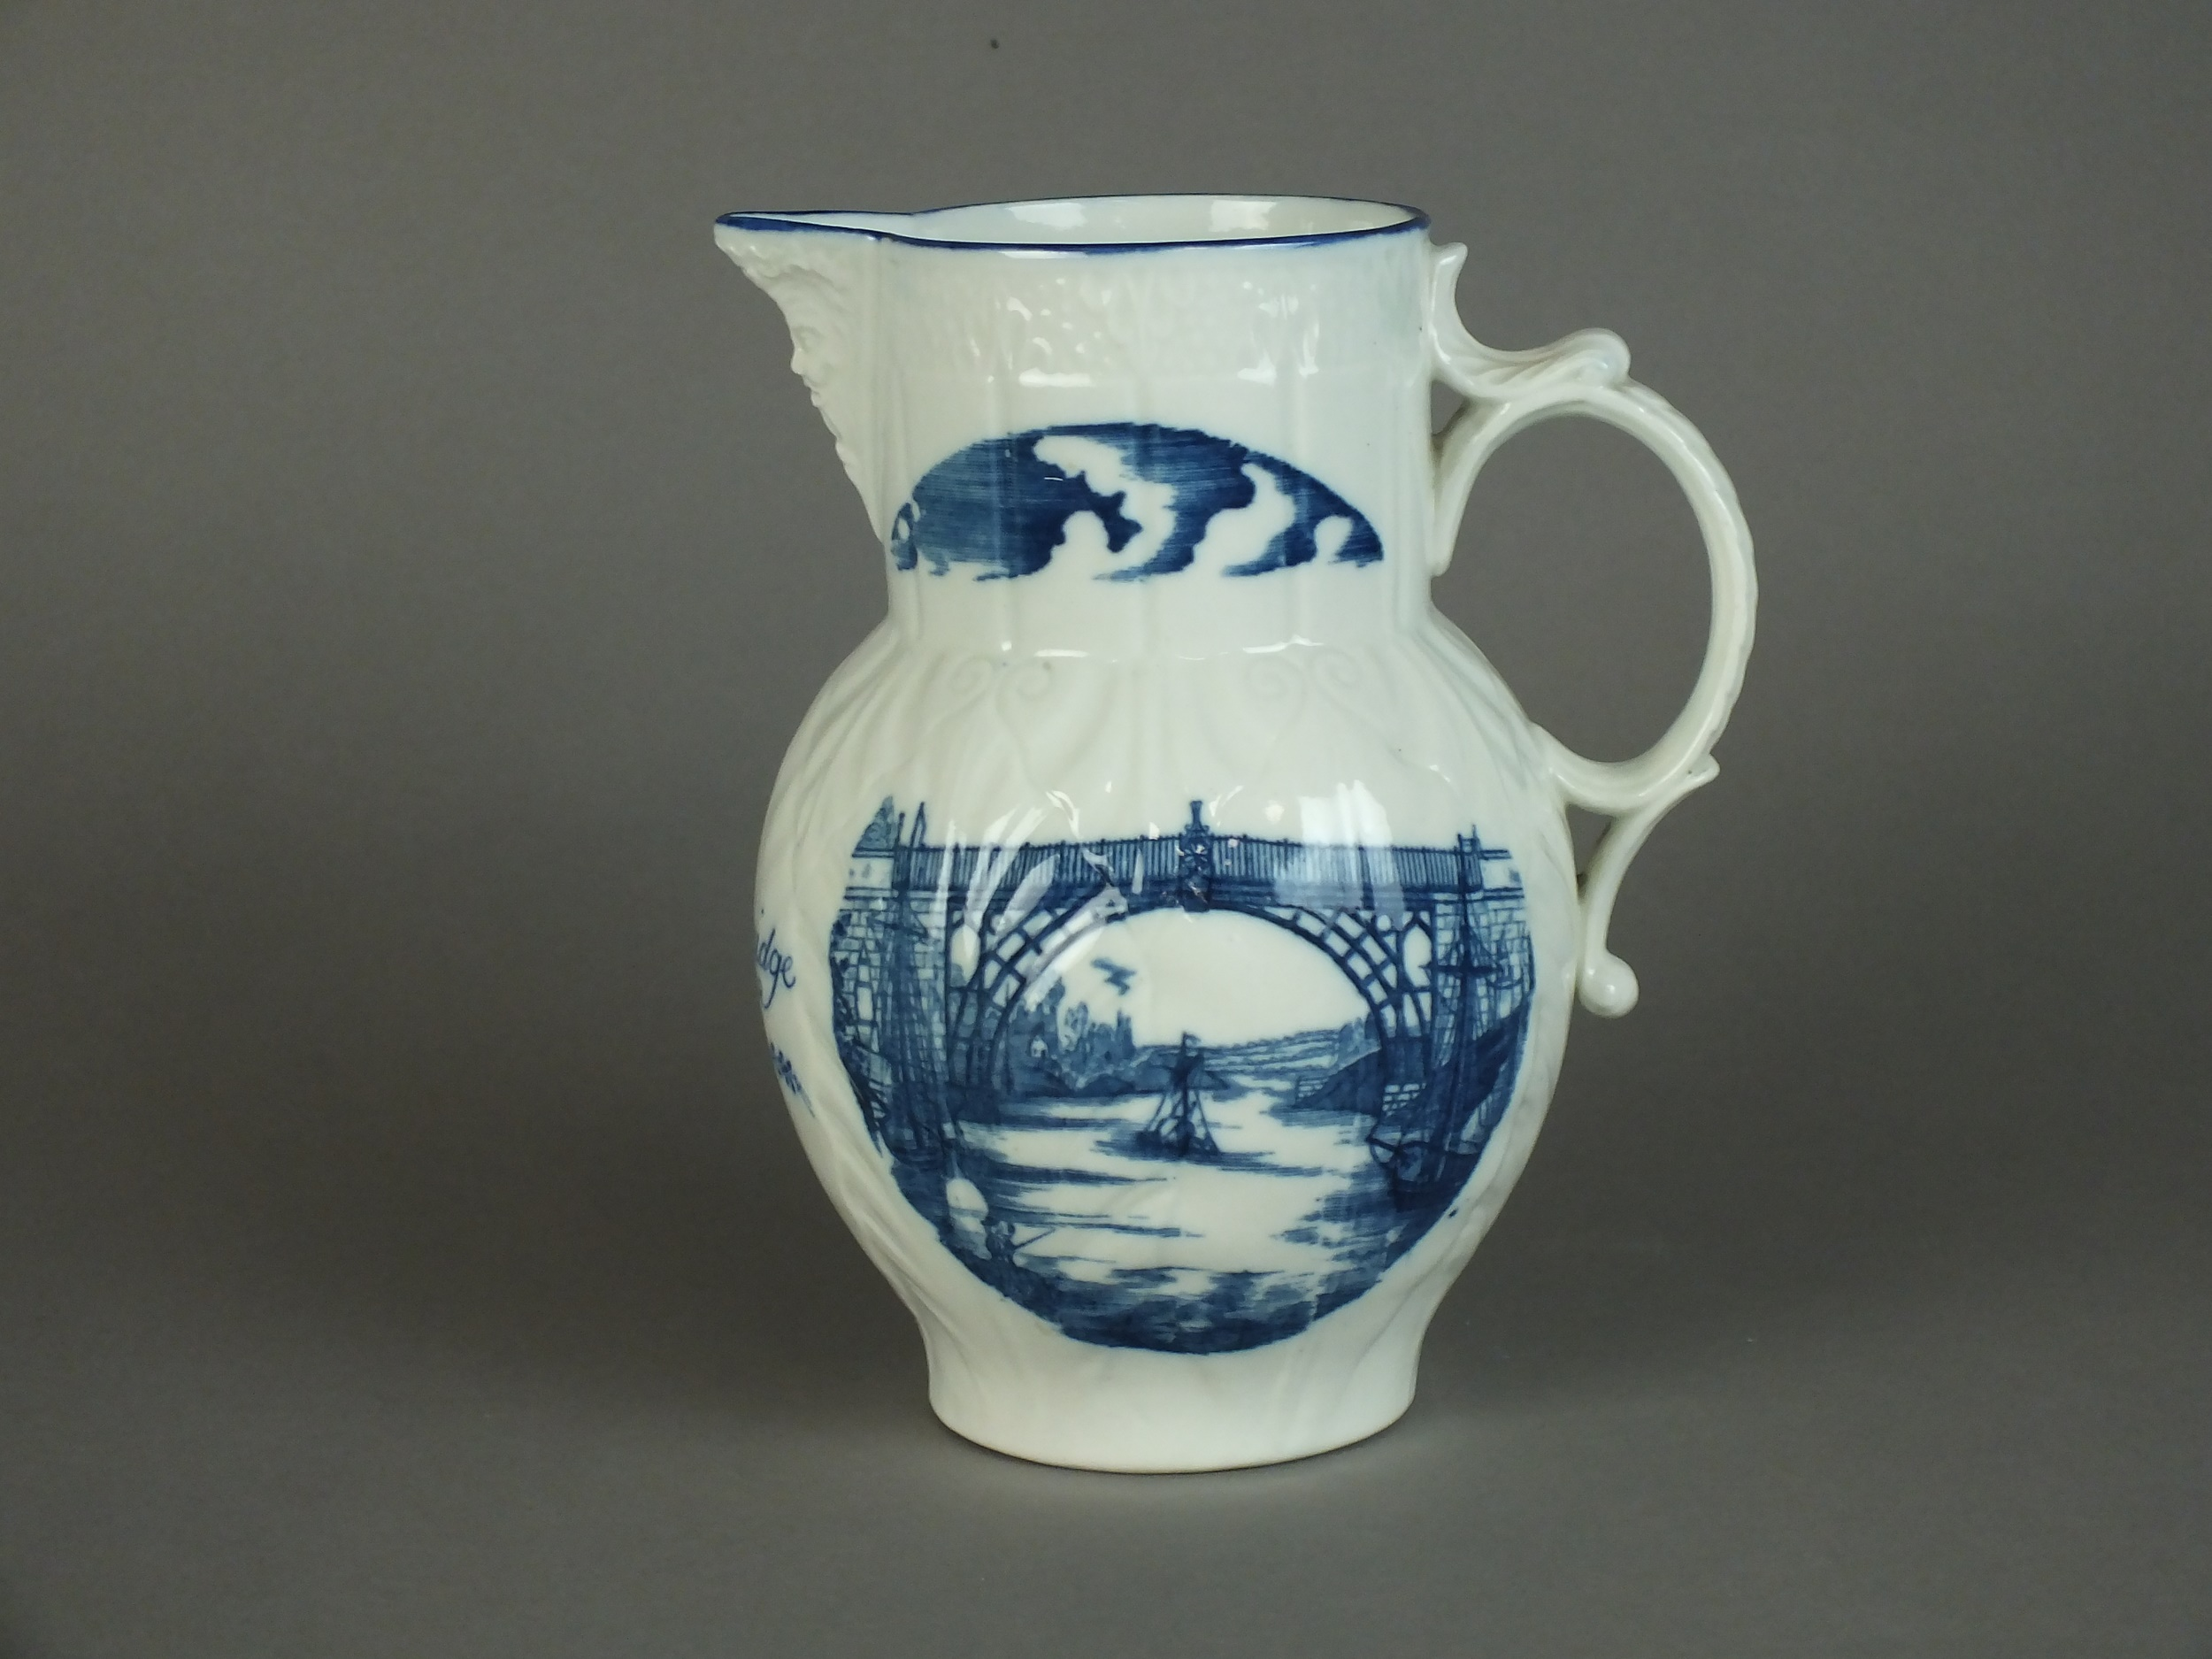 Caughley Jug depicting Ironbridge